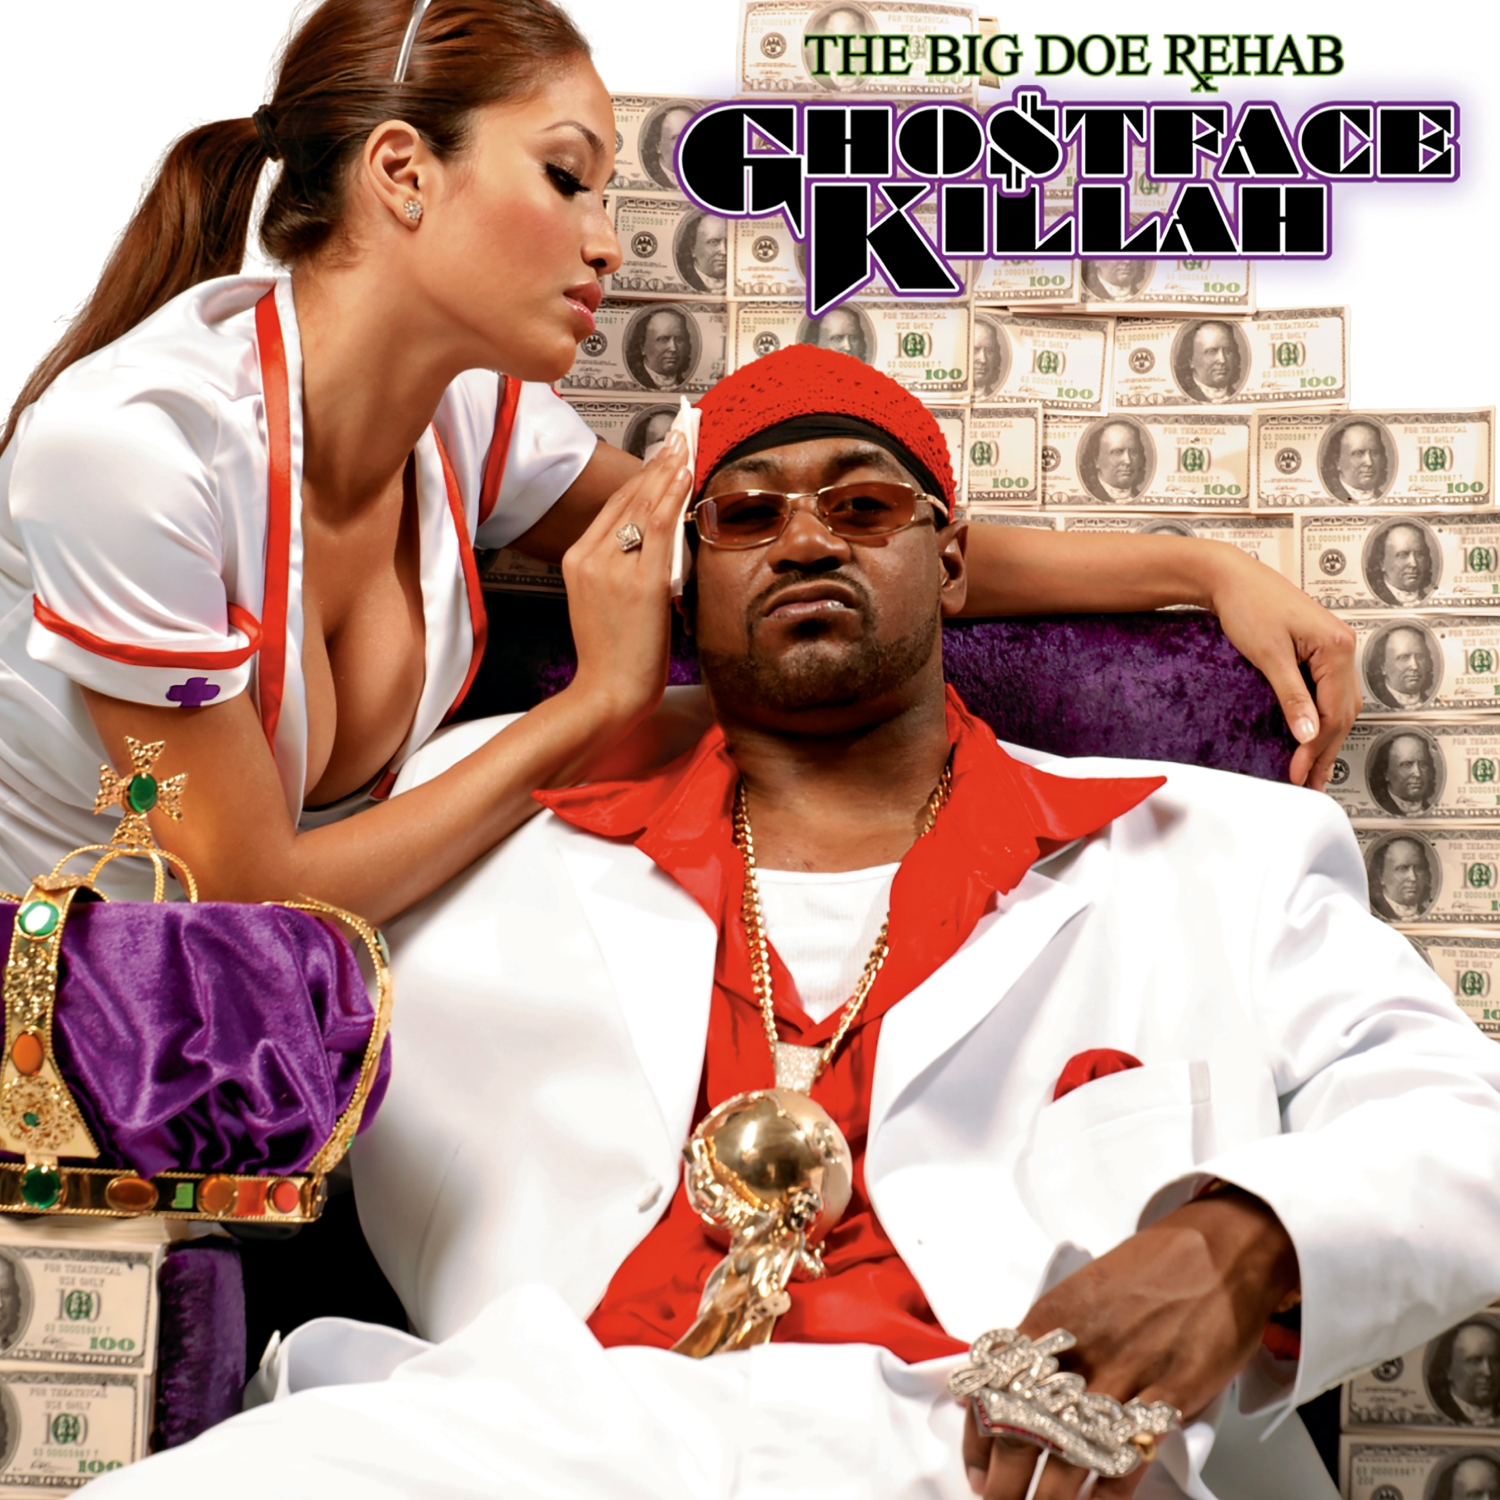 Ghostface Killah, The Big Doe Rehab